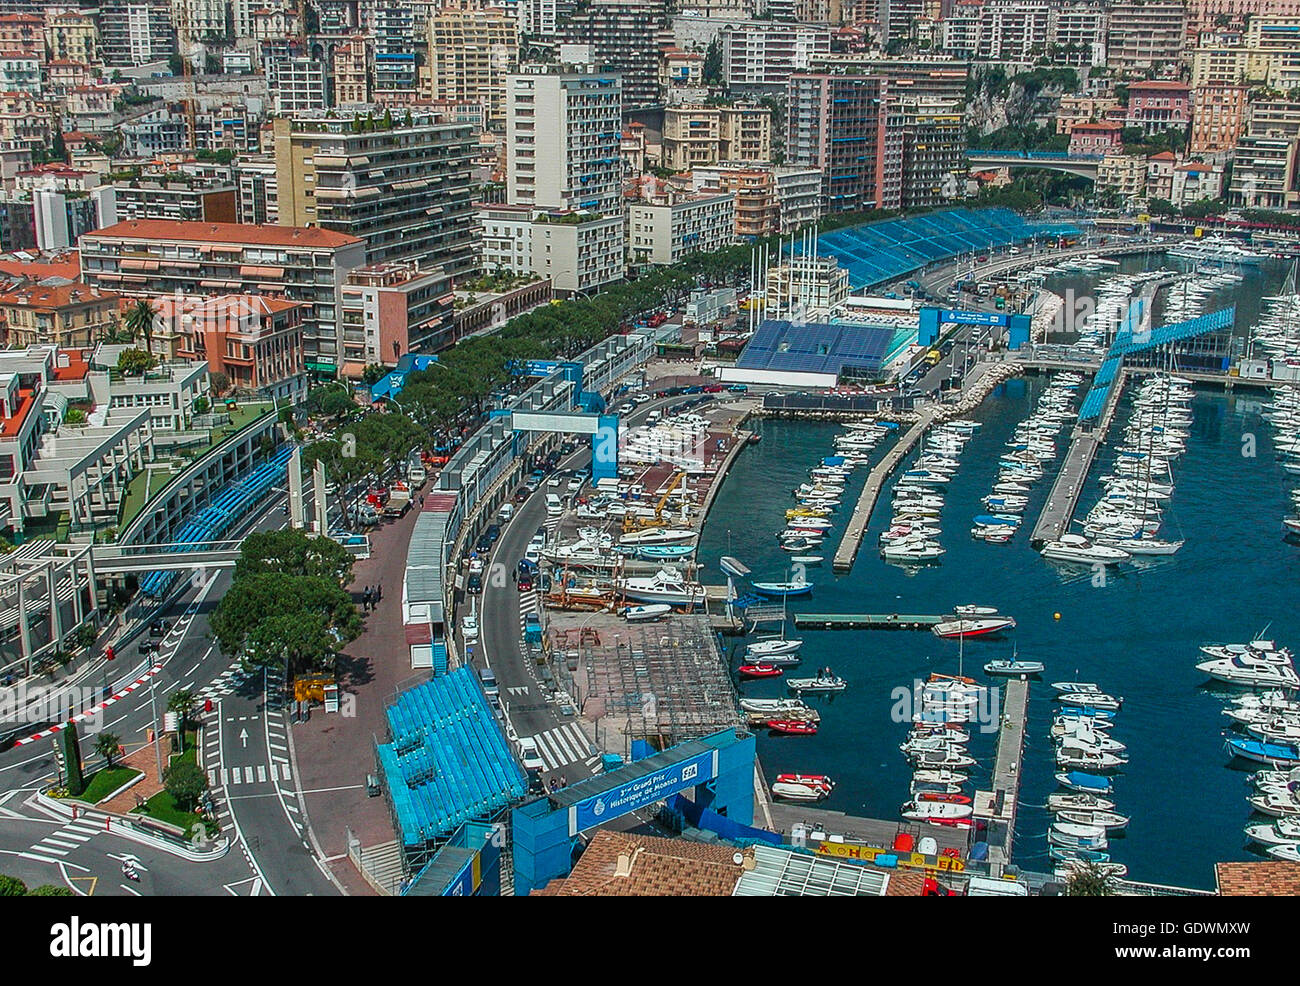 formula 1 track and yacht harbour of Monte Carlo, Monaco - Stock Image